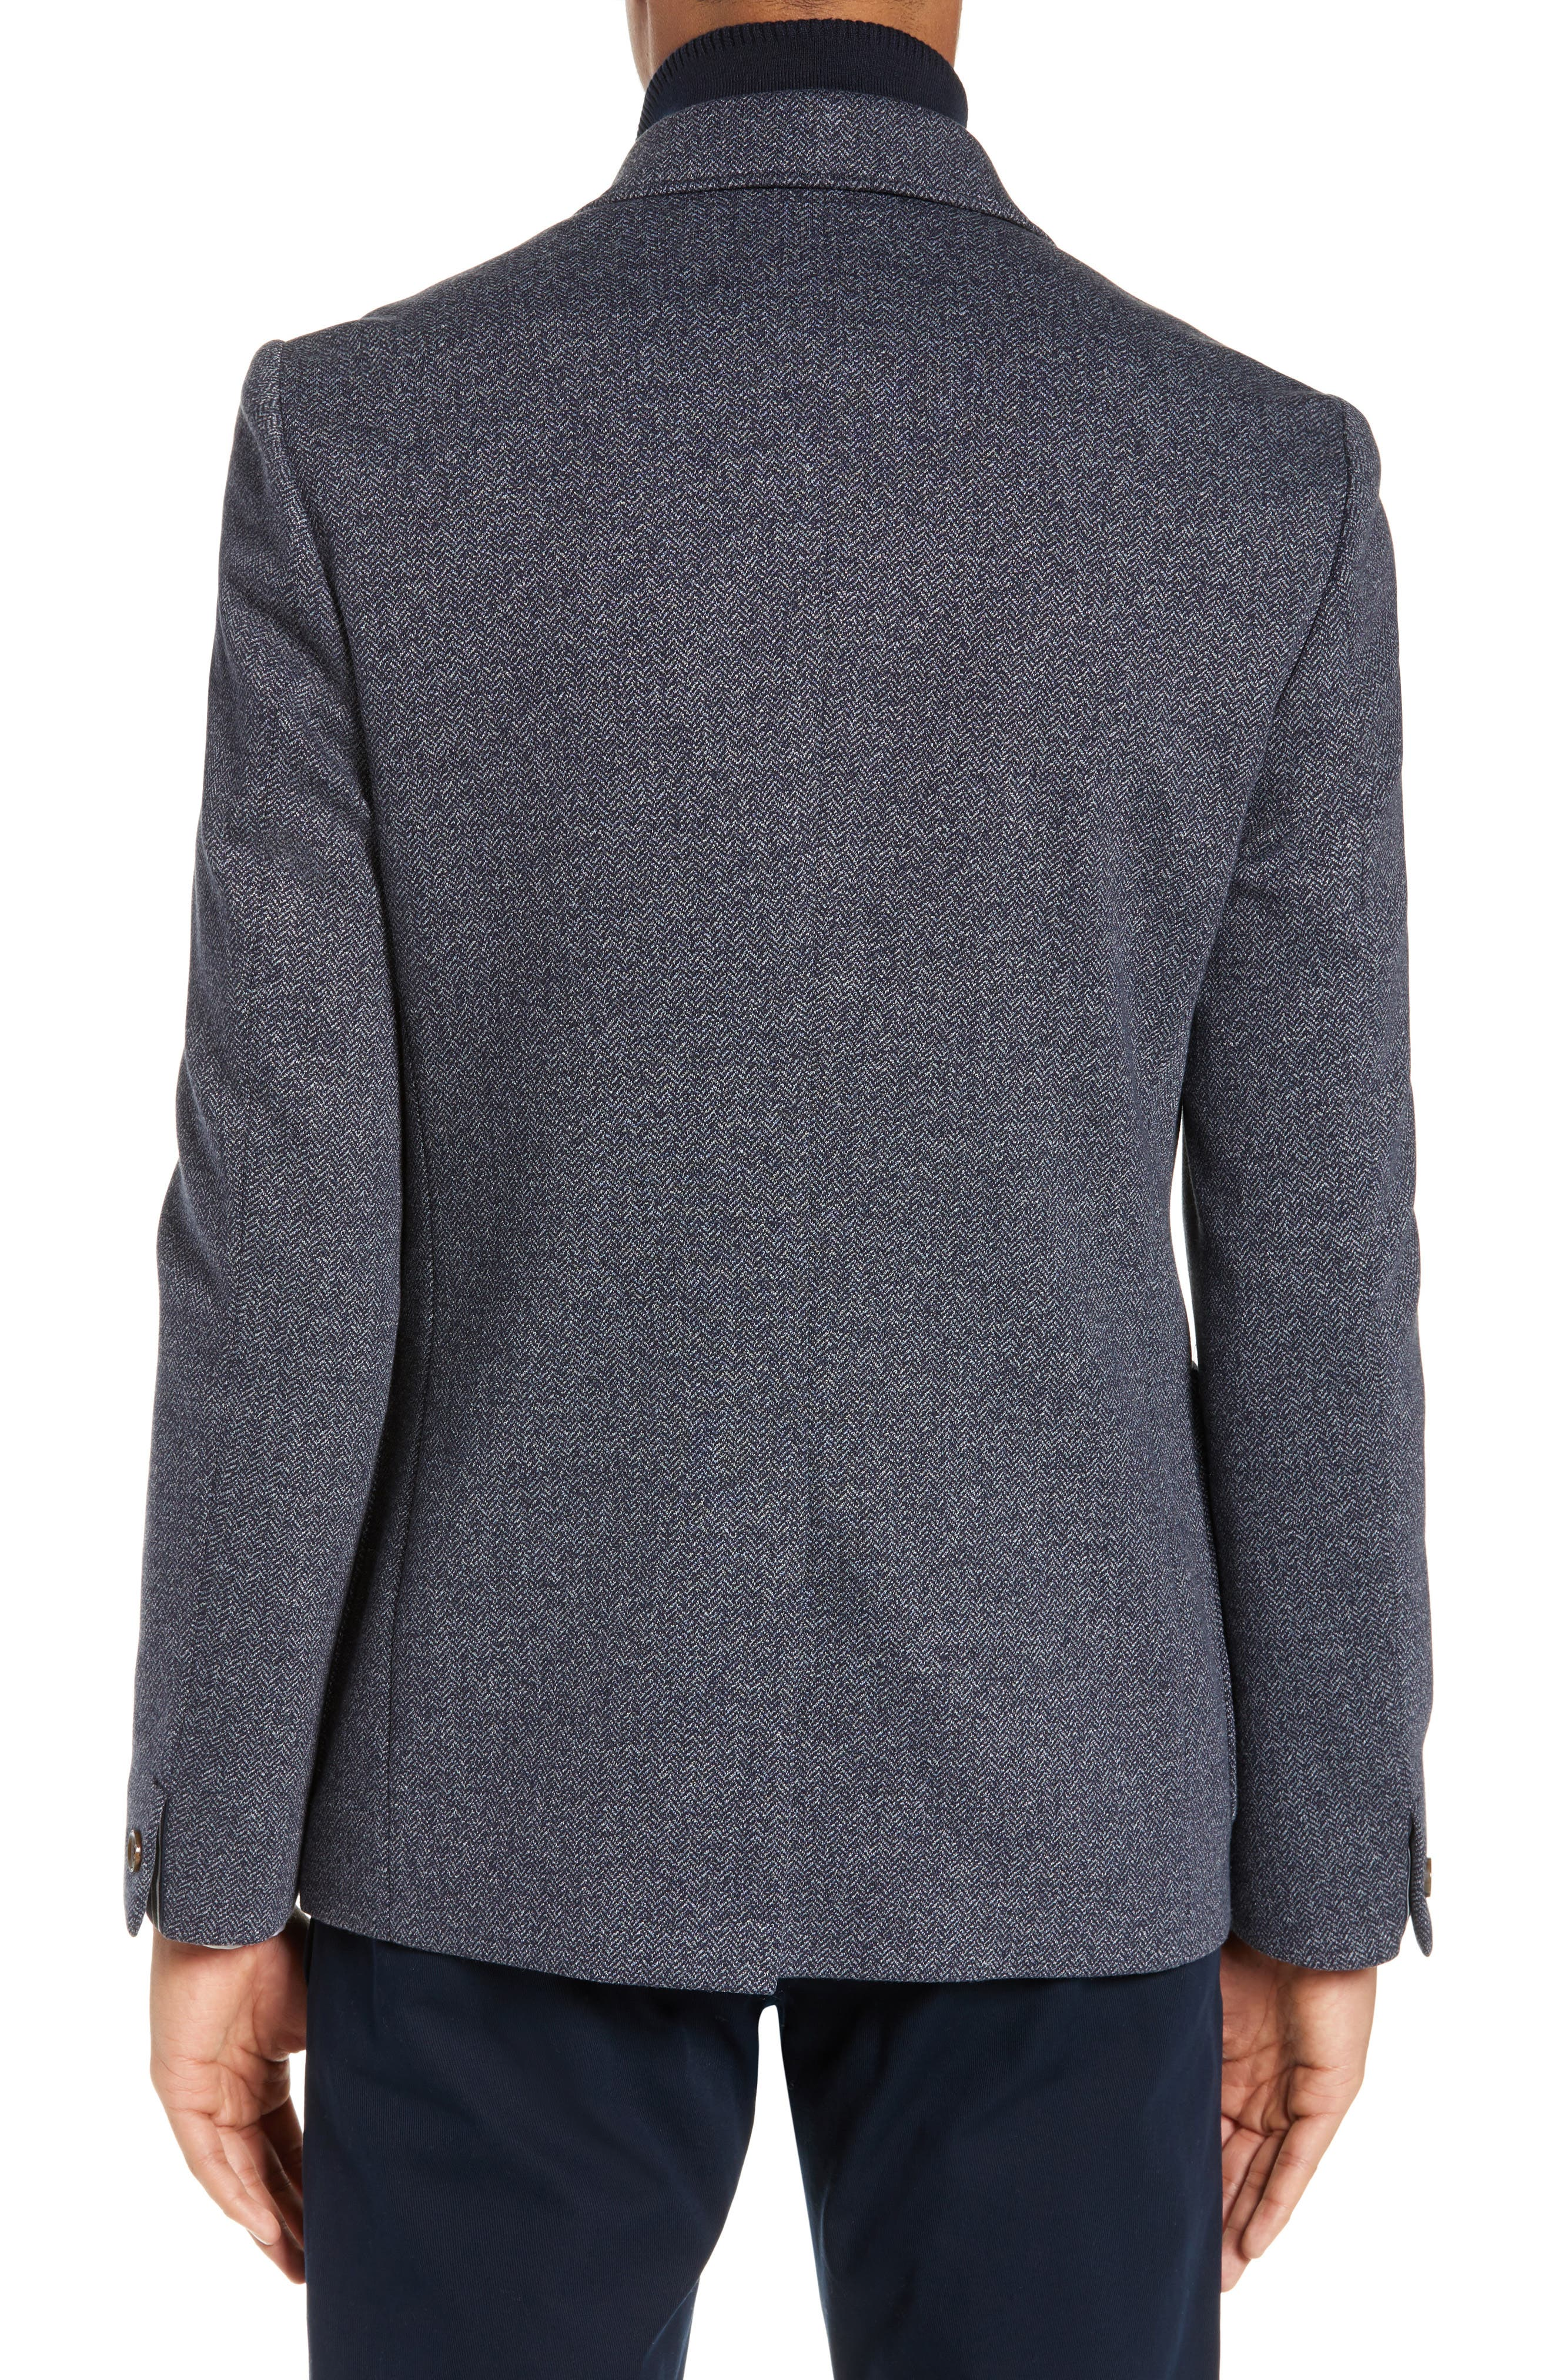 TED BAKER LONDON, Cole Layered Look Herringbone Jacket, Alternate thumbnail 2, color, BLUE